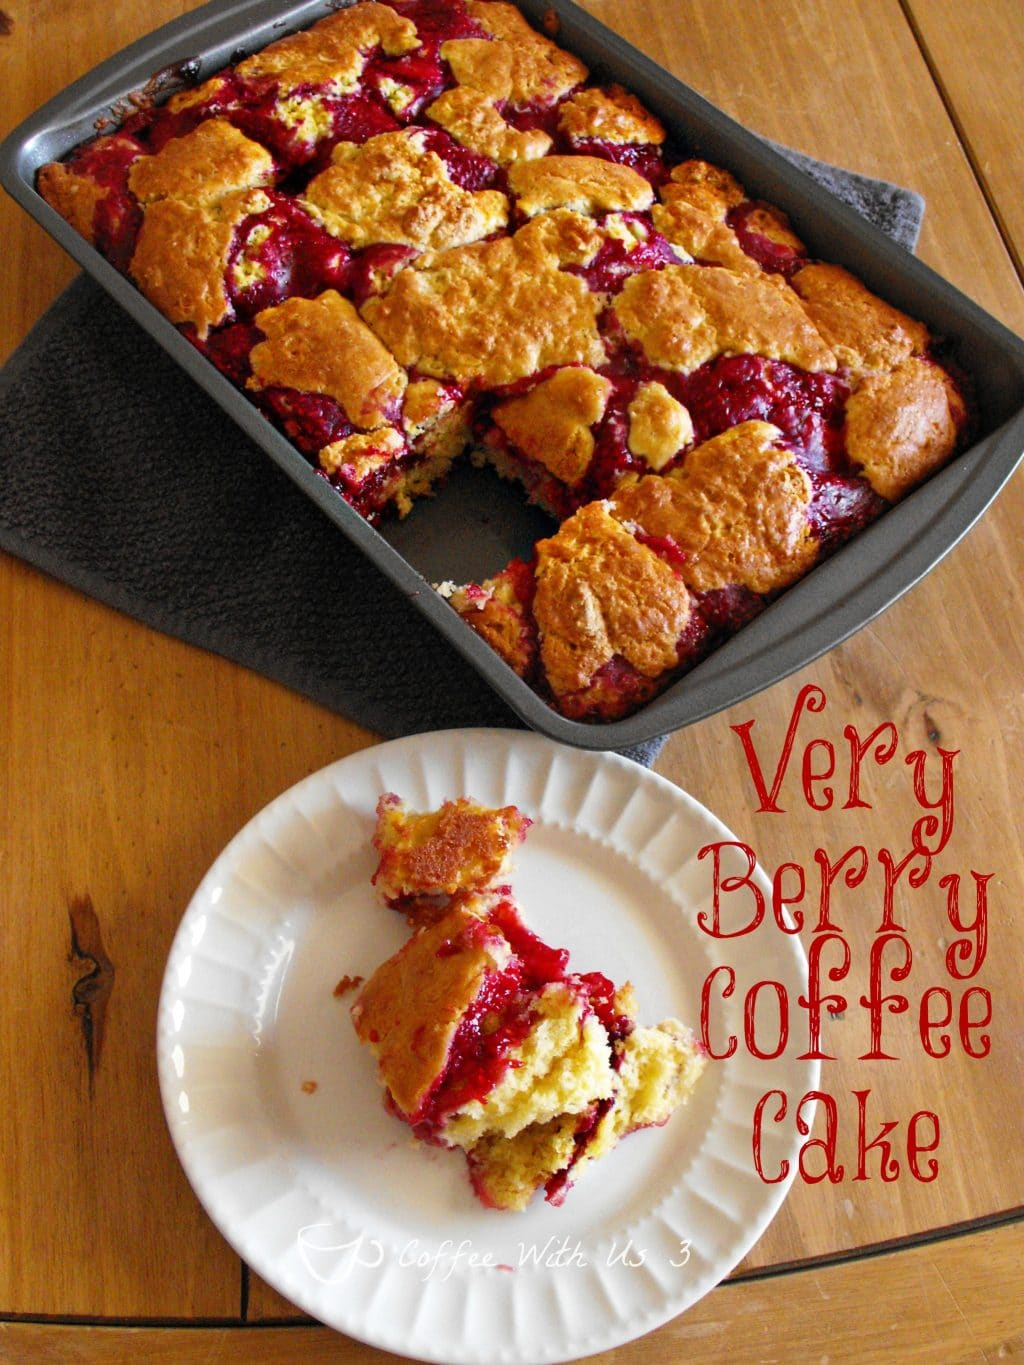 Very Berry Coffee Cake | Coffee With Us 3